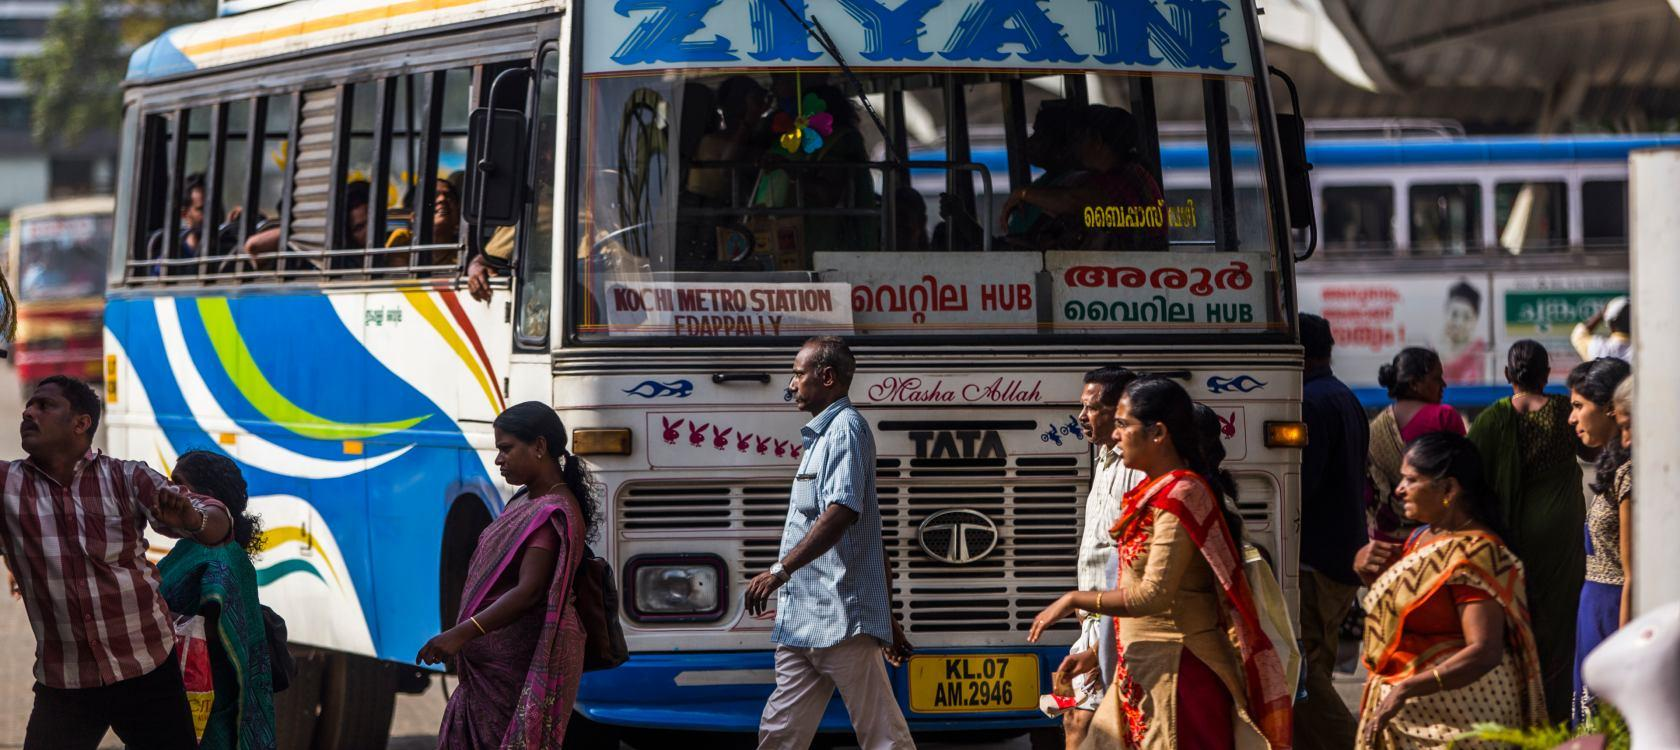 Reducing urban greenhouse gas emissions through sustainable urban mobility planning, India